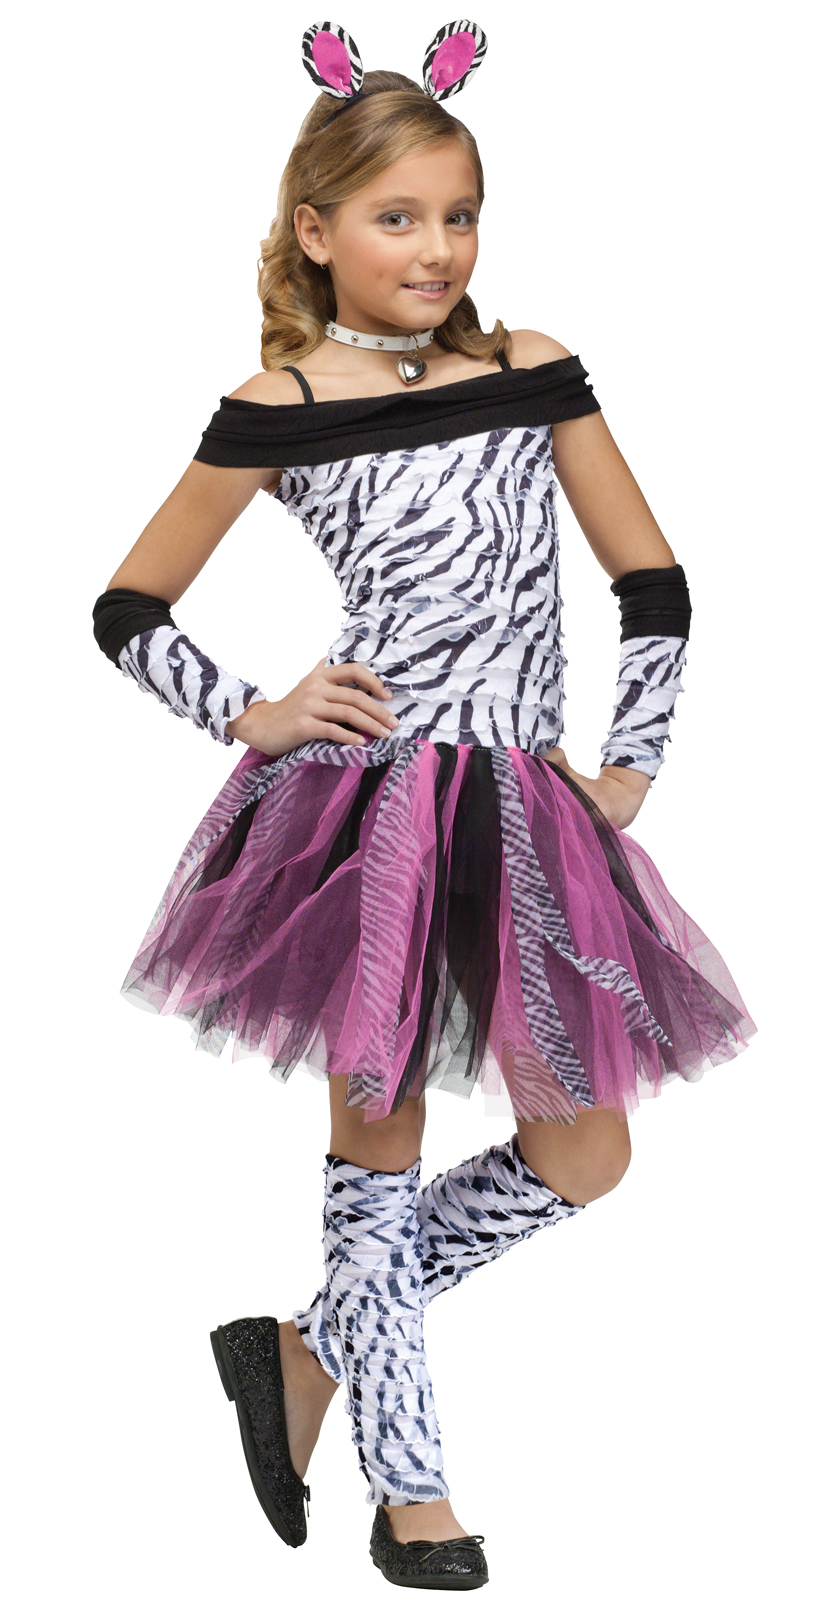 Zebra Child Costume Buycostumescom  sc 1 st  Meningrey & Zebra Costume For Kids - Meningrey